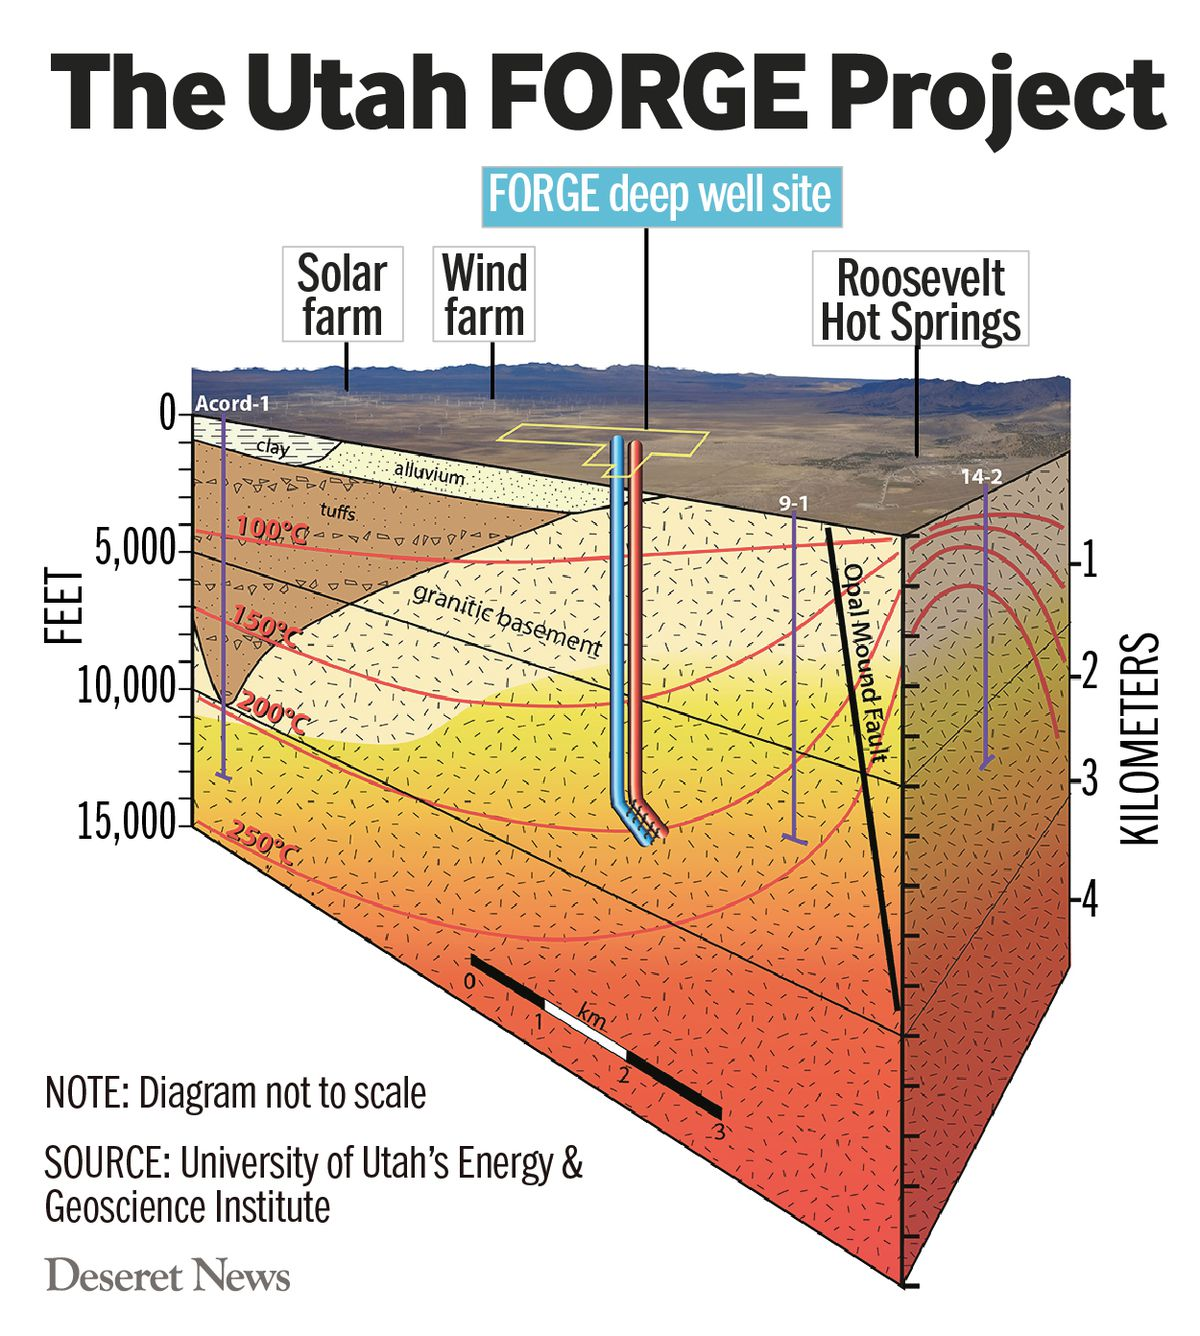 The Utah FORGE Project